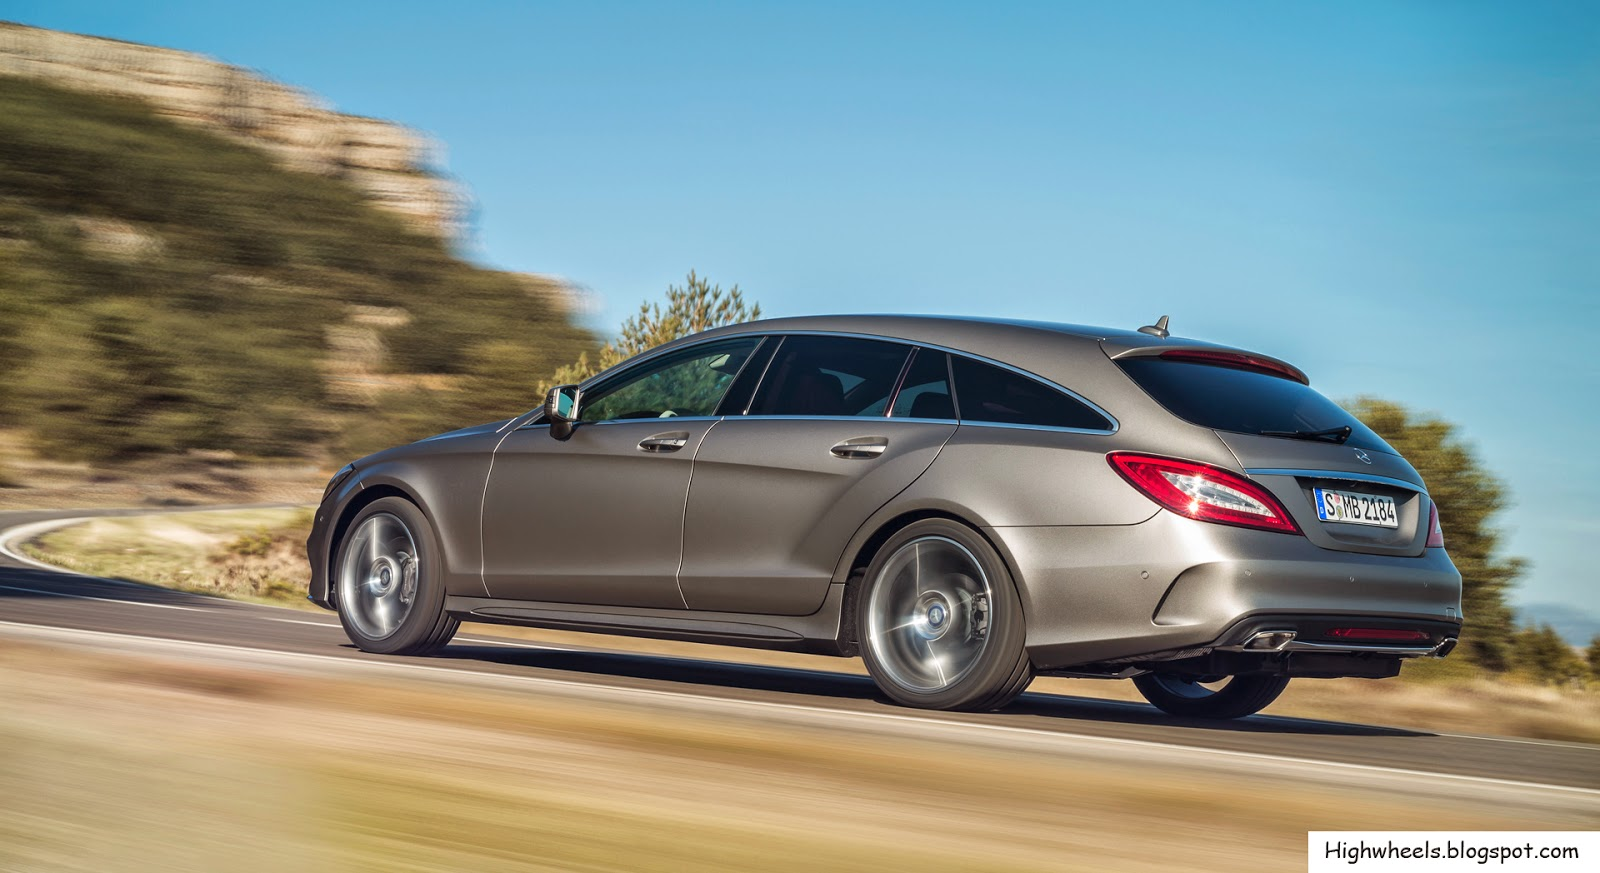 High wheels 2015 mercedes benz cls class shooting brake for Mercedes benz cls class